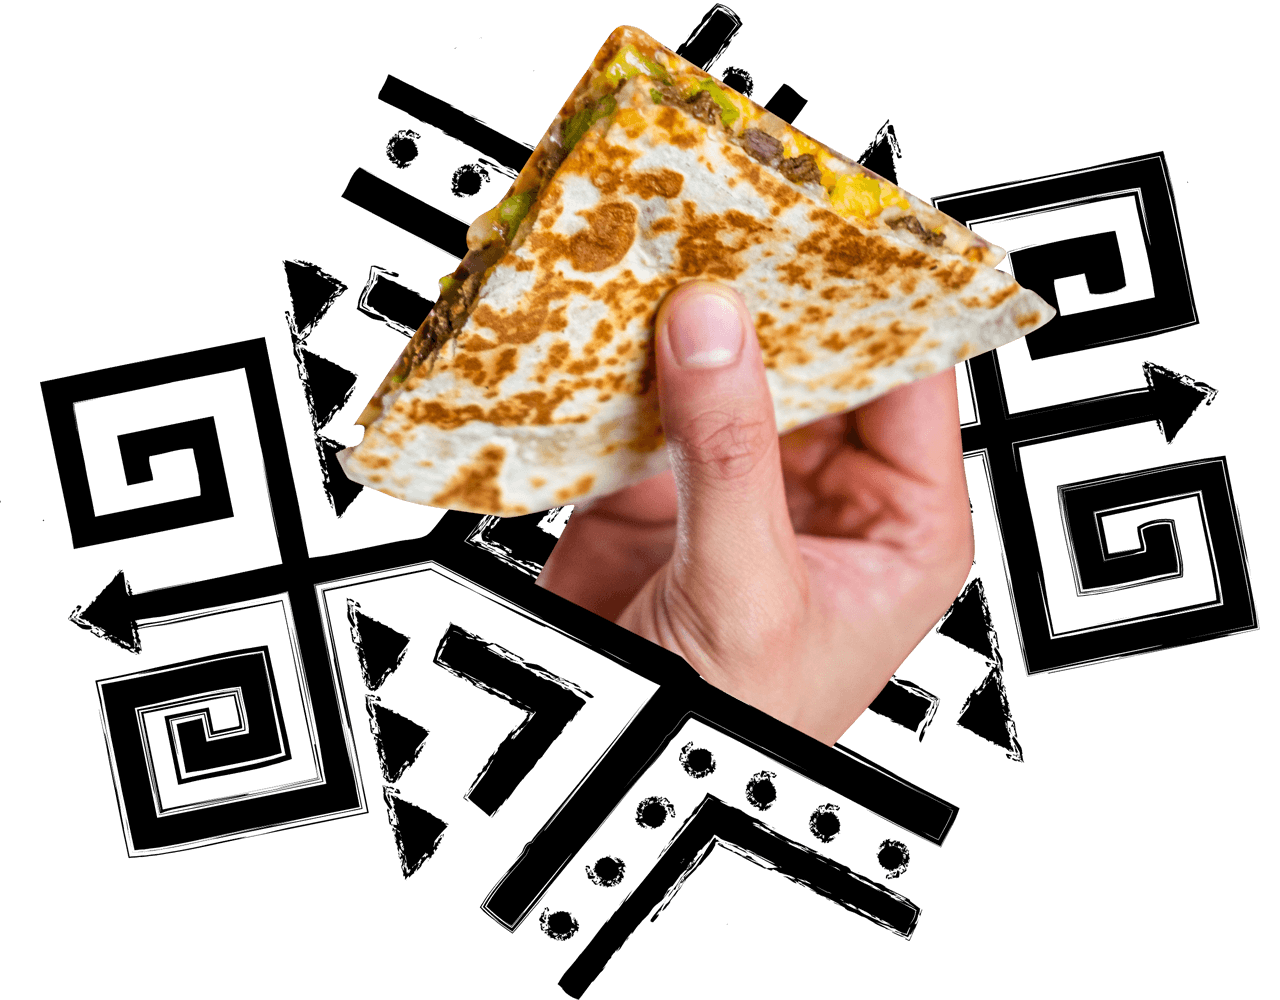 person holding piece of quesadilla